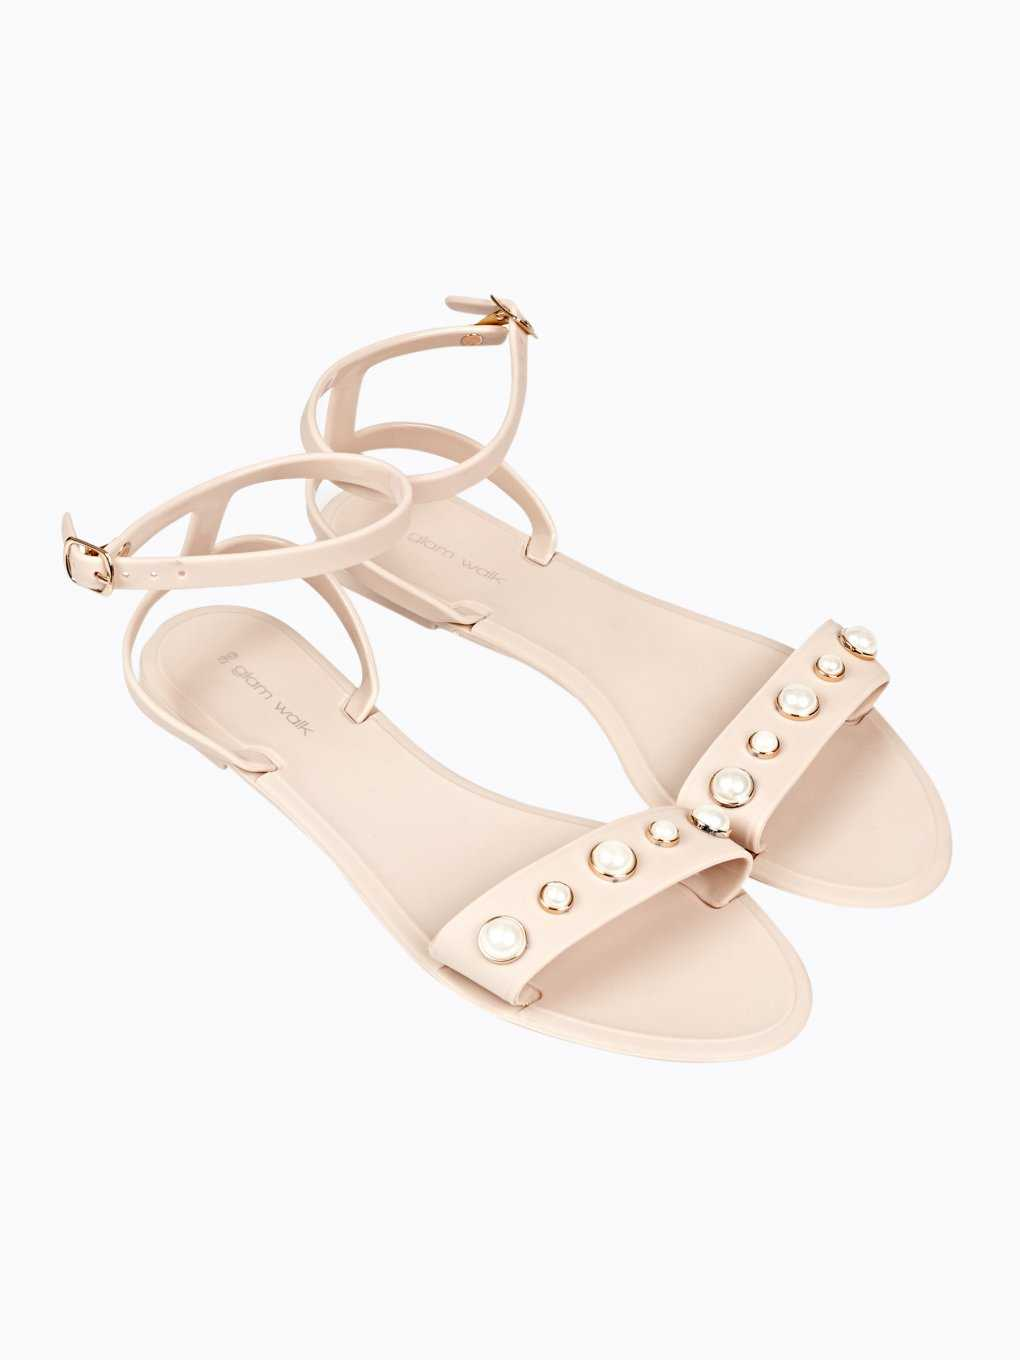 JELLY FLAT SANDALS WITH PEARLS